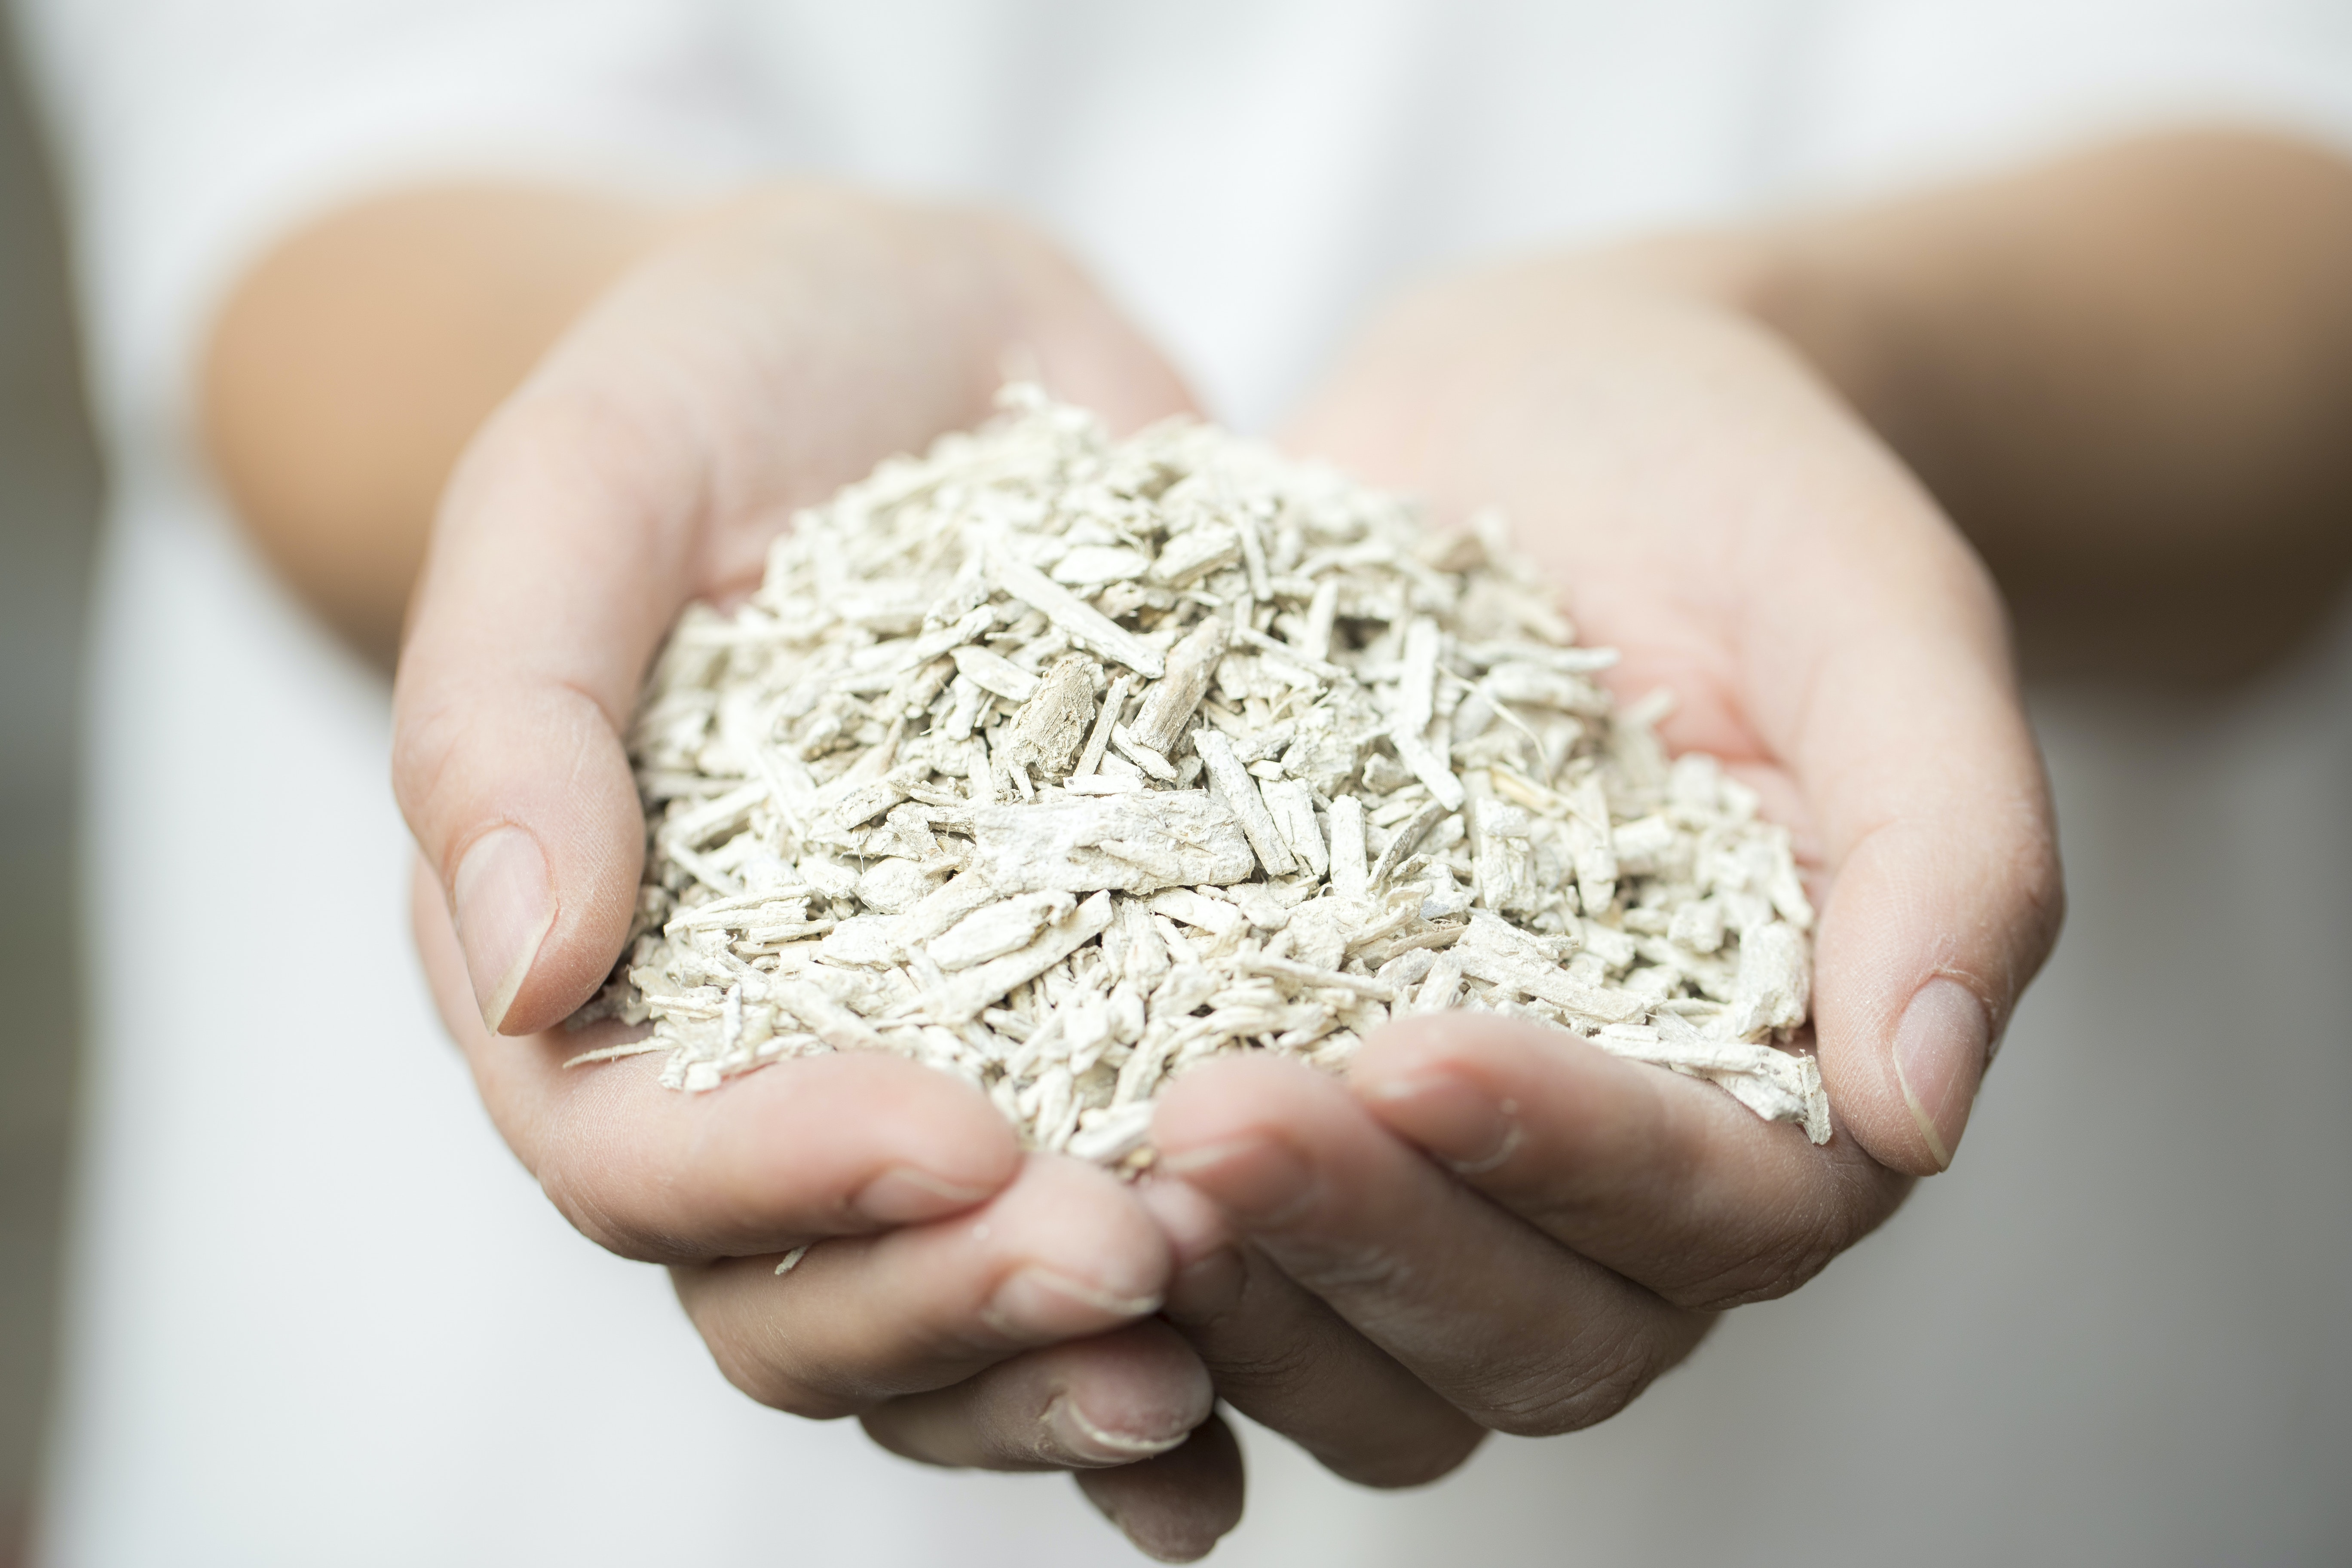 Hemp will save us from fire, cockroaches, heat, and microplastics